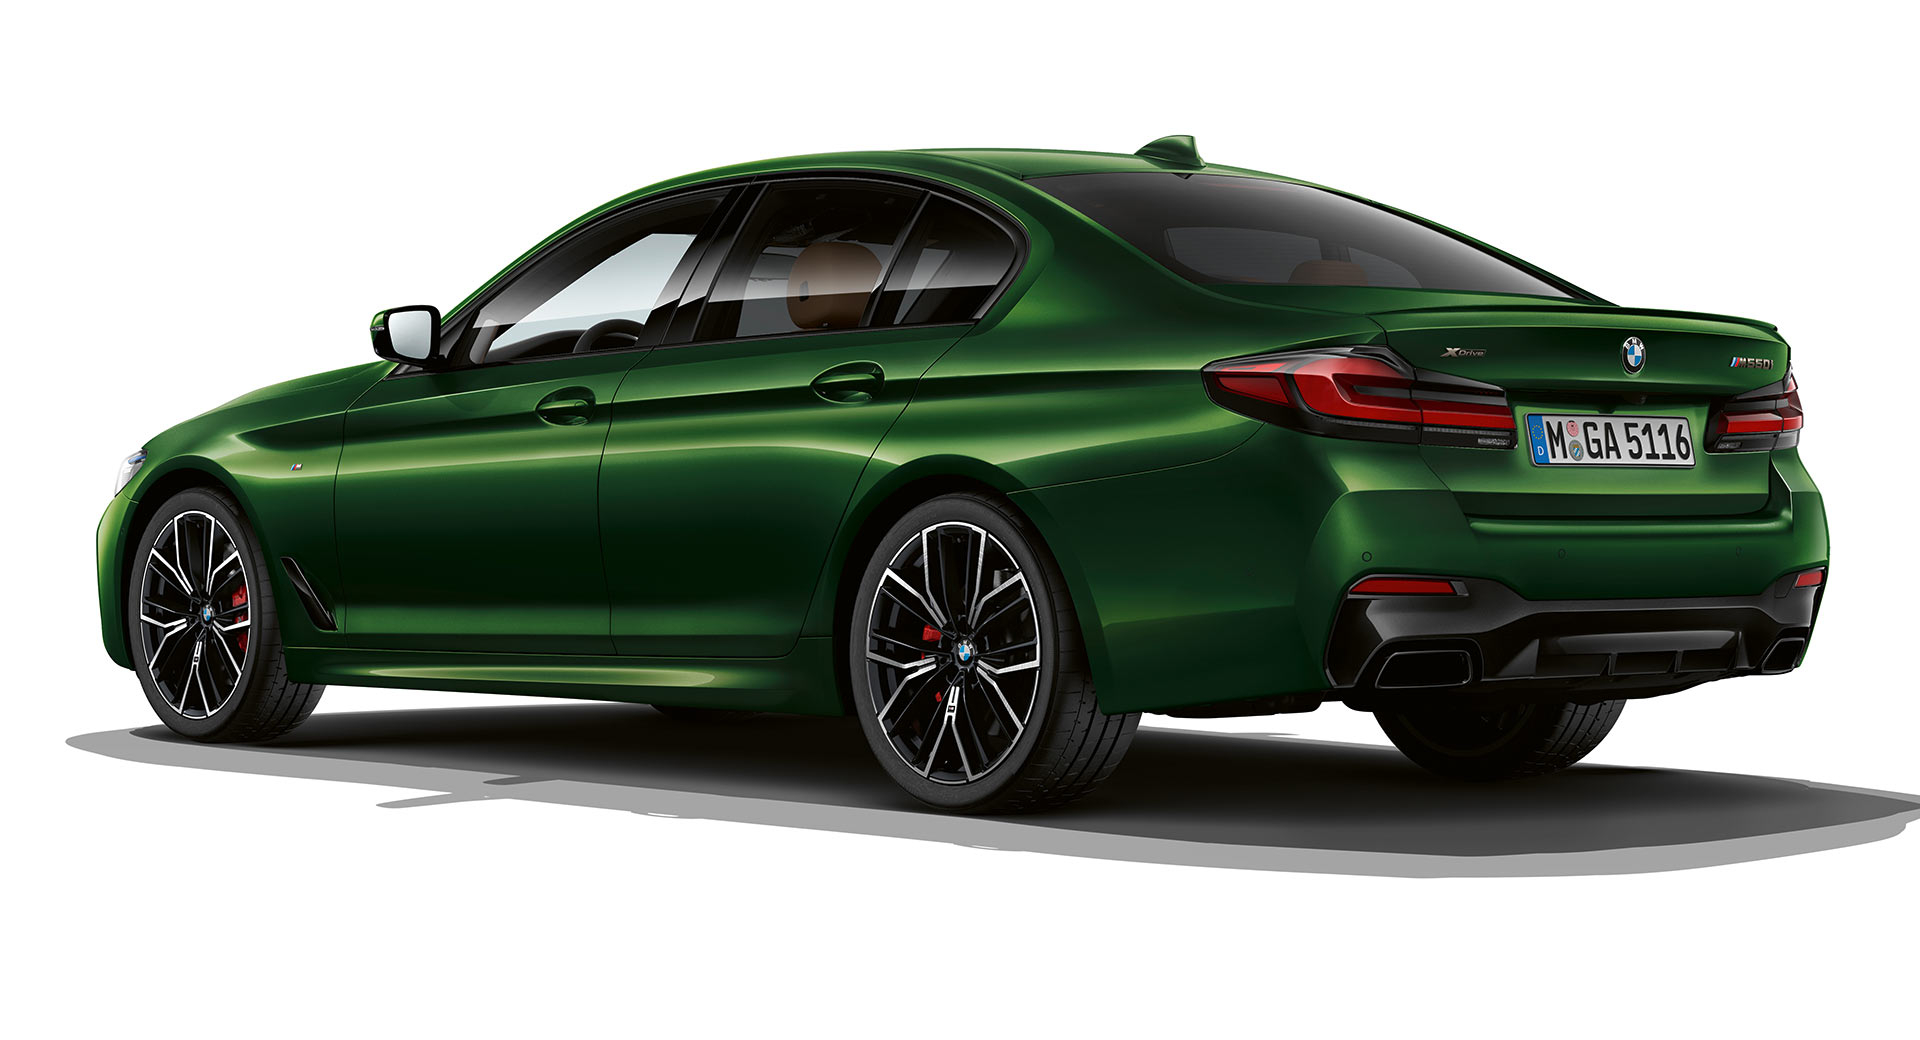 BMW M550i In Verde Ermes Begs The Question: Who Needs An M5 ...